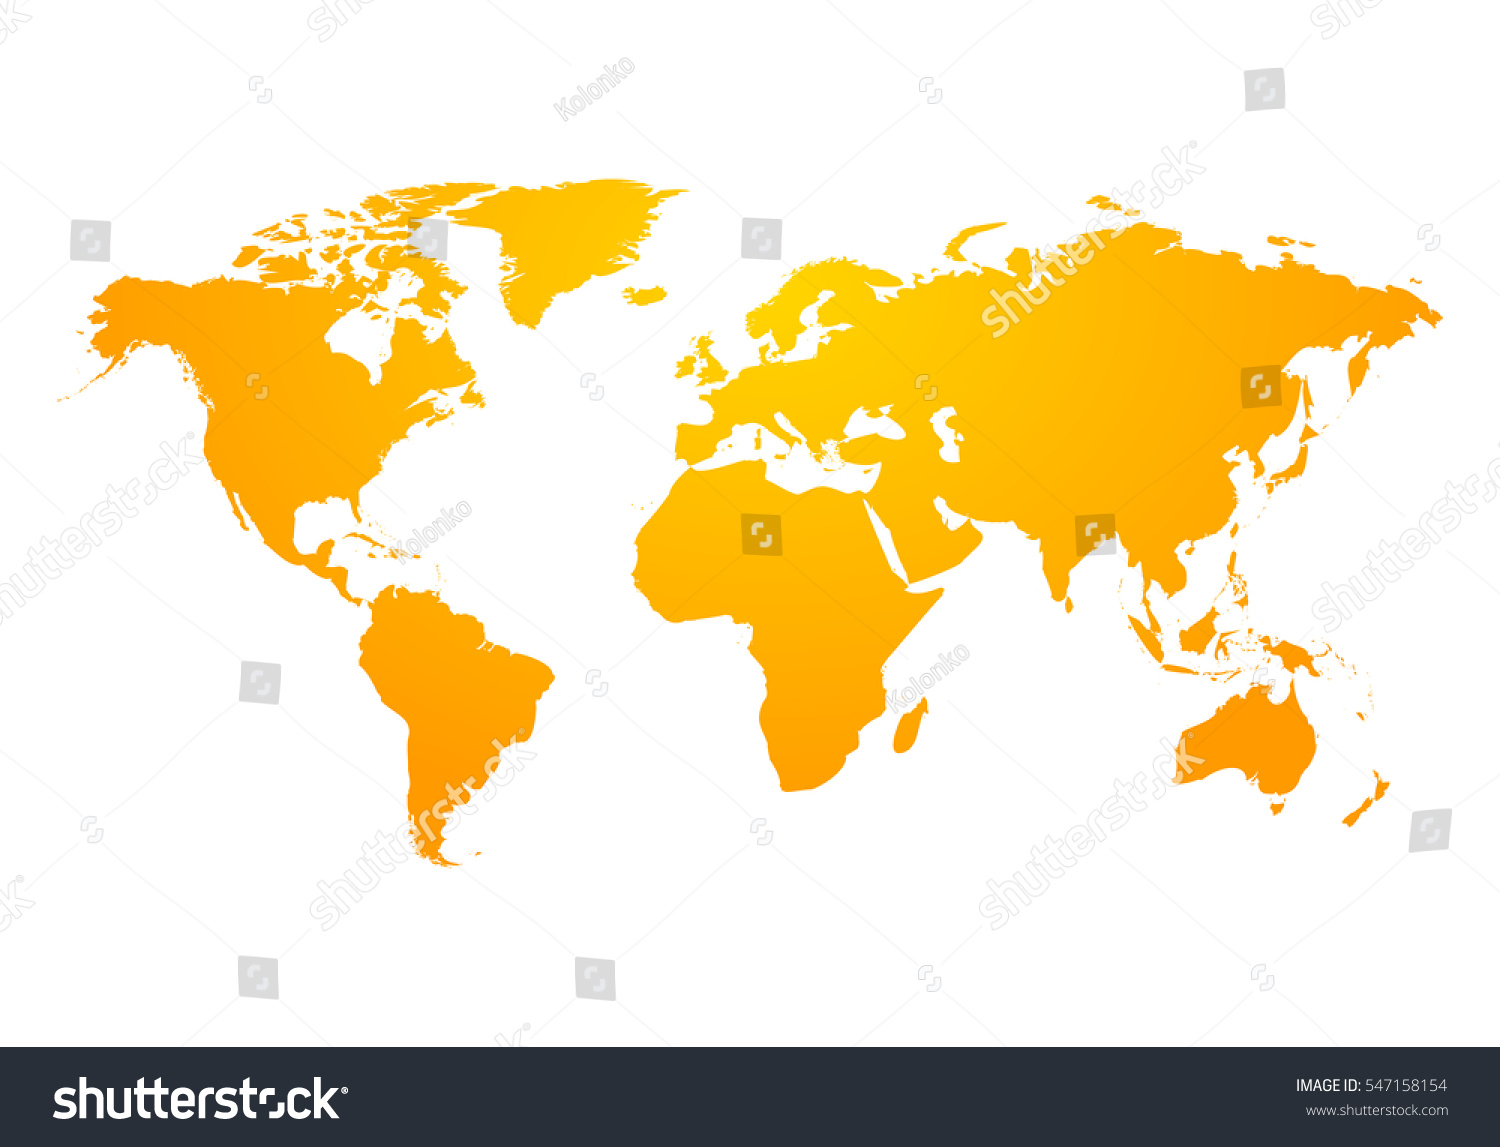 Vector world map global earth icon stock vector 547158154 vector world map global earth icon america asia australia africa usa gumiabroncs Images